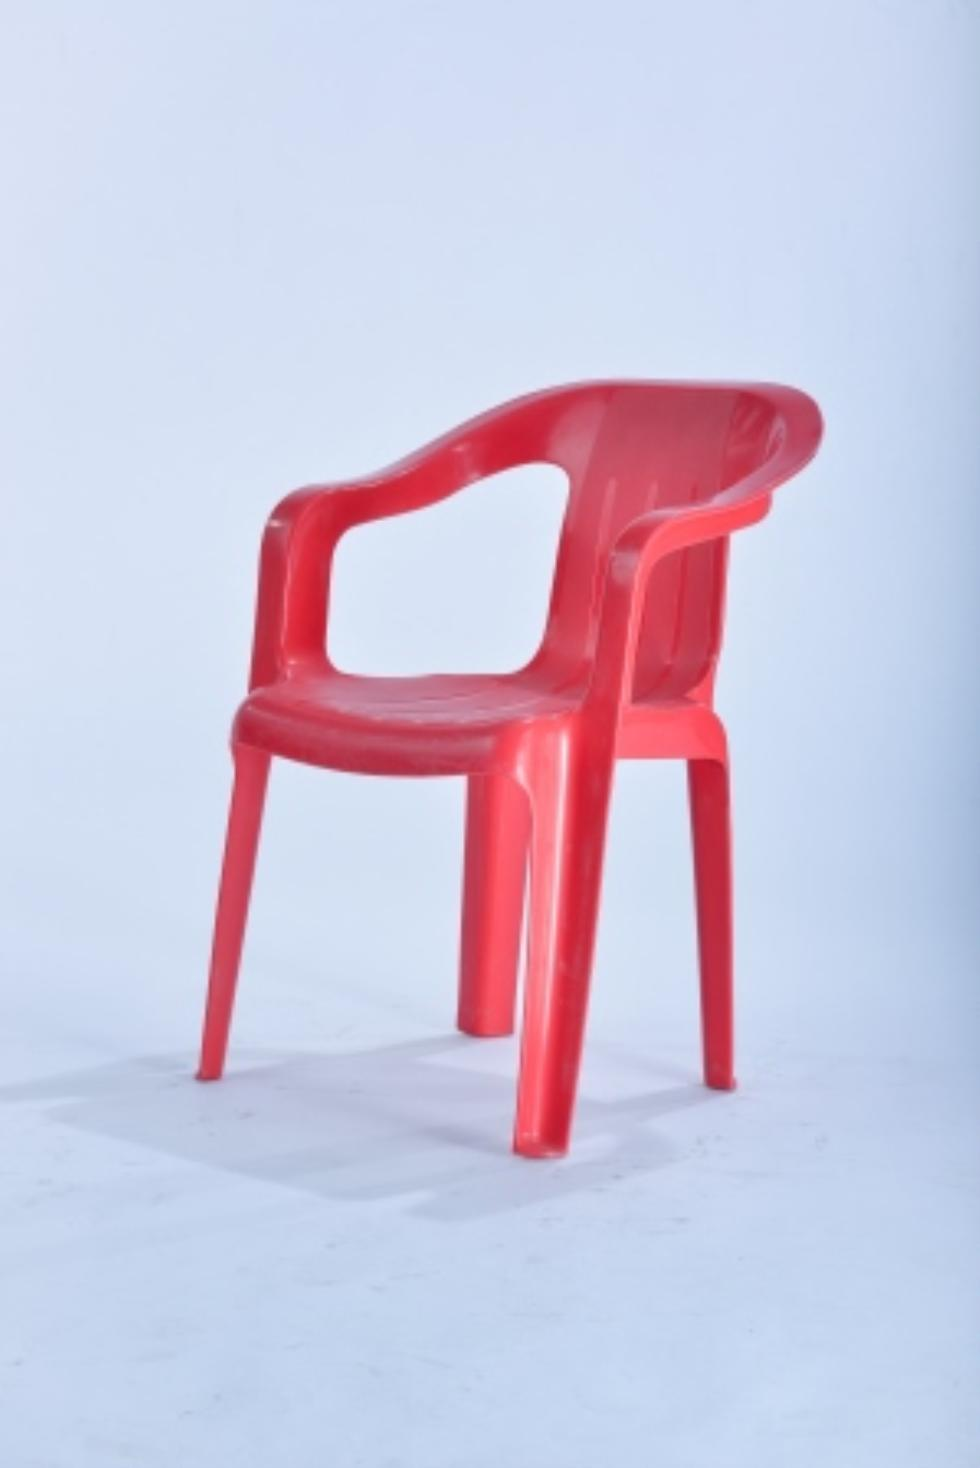 marianne 39 s rentals children 39 s chair with arms red rentals. Black Bedroom Furniture Sets. Home Design Ideas